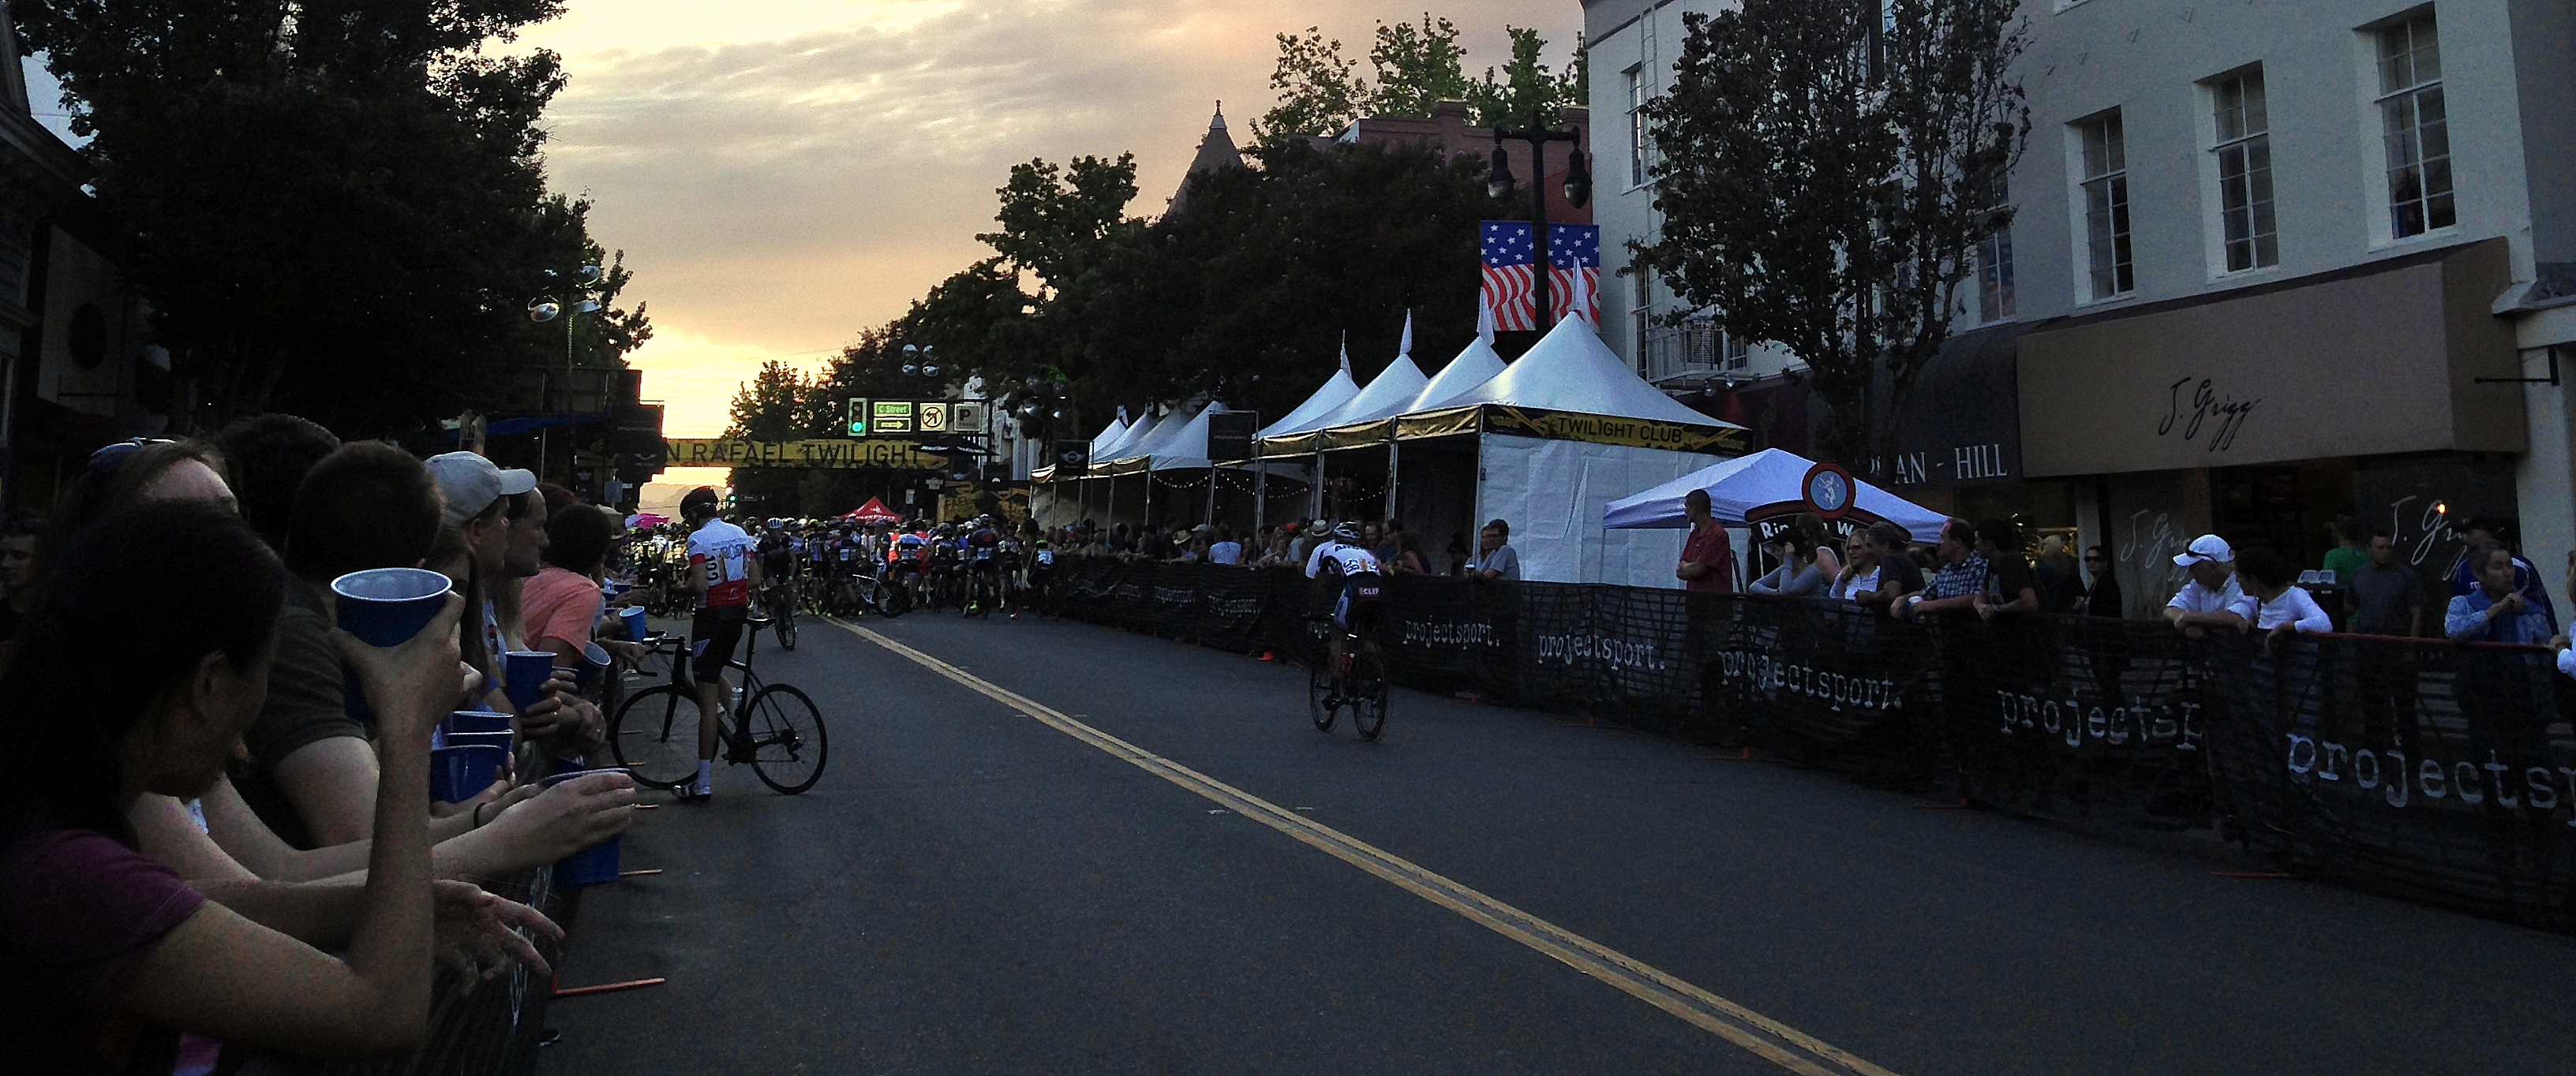 Drums & Crumbs at San Rafael Twilight Criterium VIP Tent